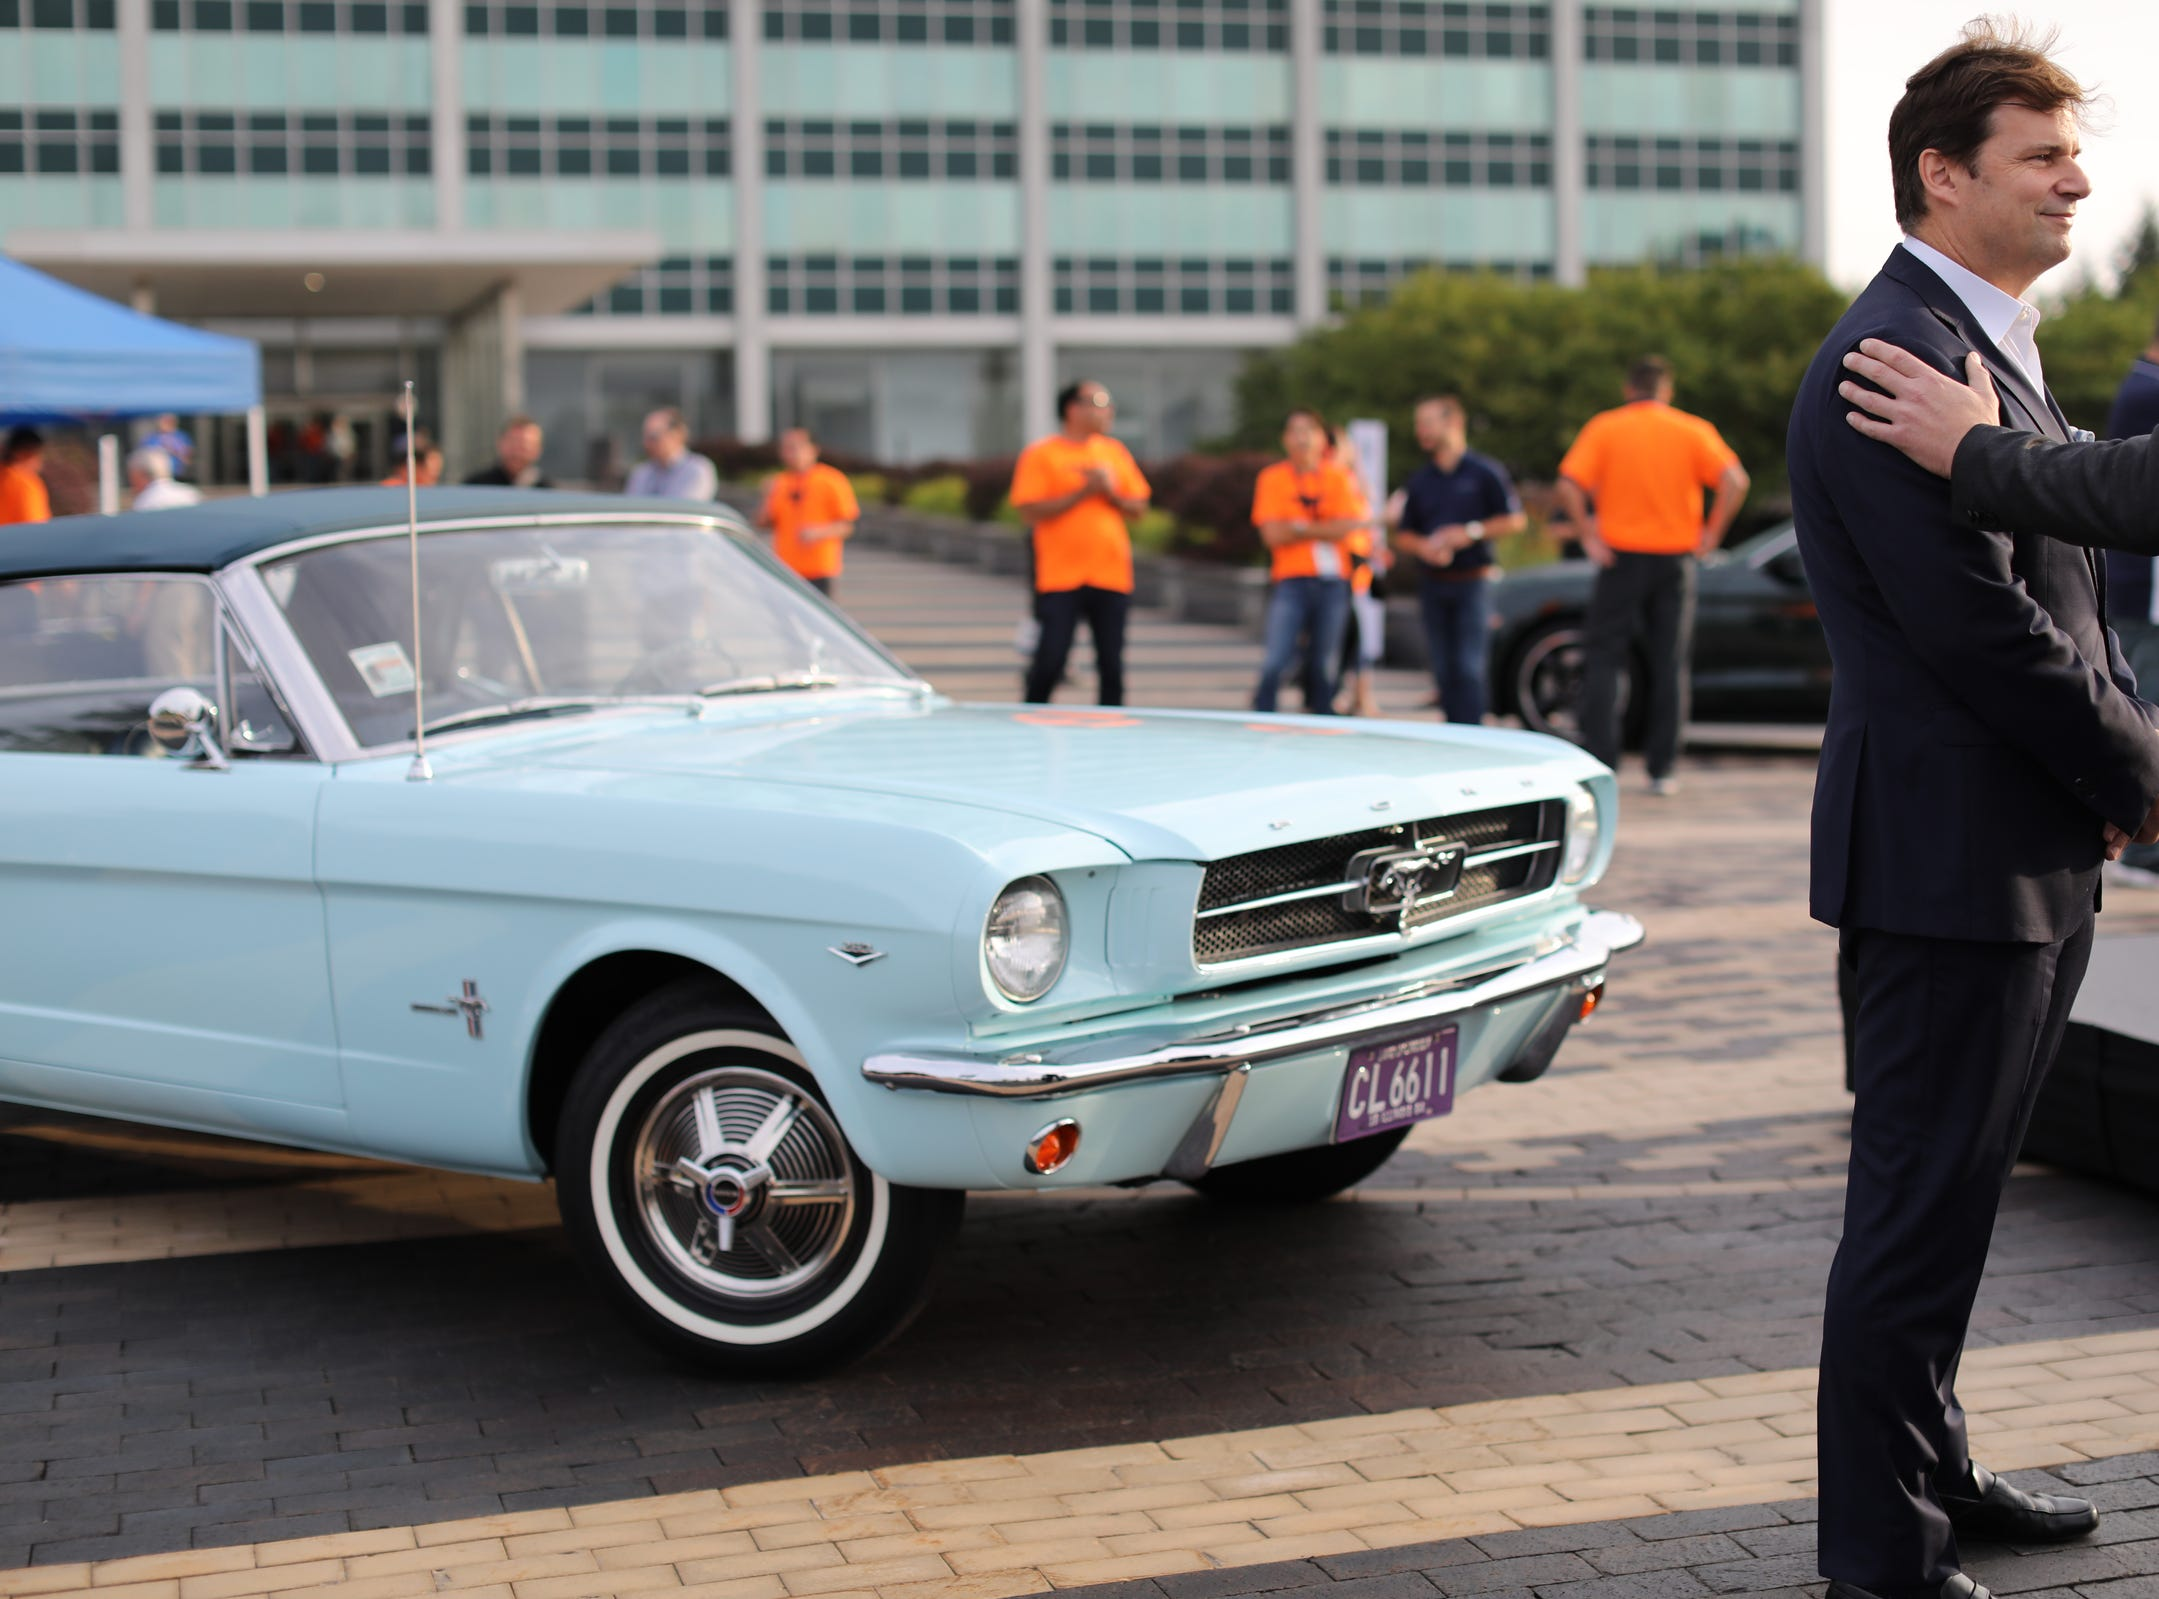 James D. Farley Jr., Executive Vice President and President, Global Markets, Ford Motor Company, is interviewed by the media in front of Gail Wise's 1964 Ford Mustang convertible, during a Ford event celebrating the 10,000,000 Mustang at the Ford Motor Company World Headquarters in Dearborn on Wed., Aug 8, 2018.